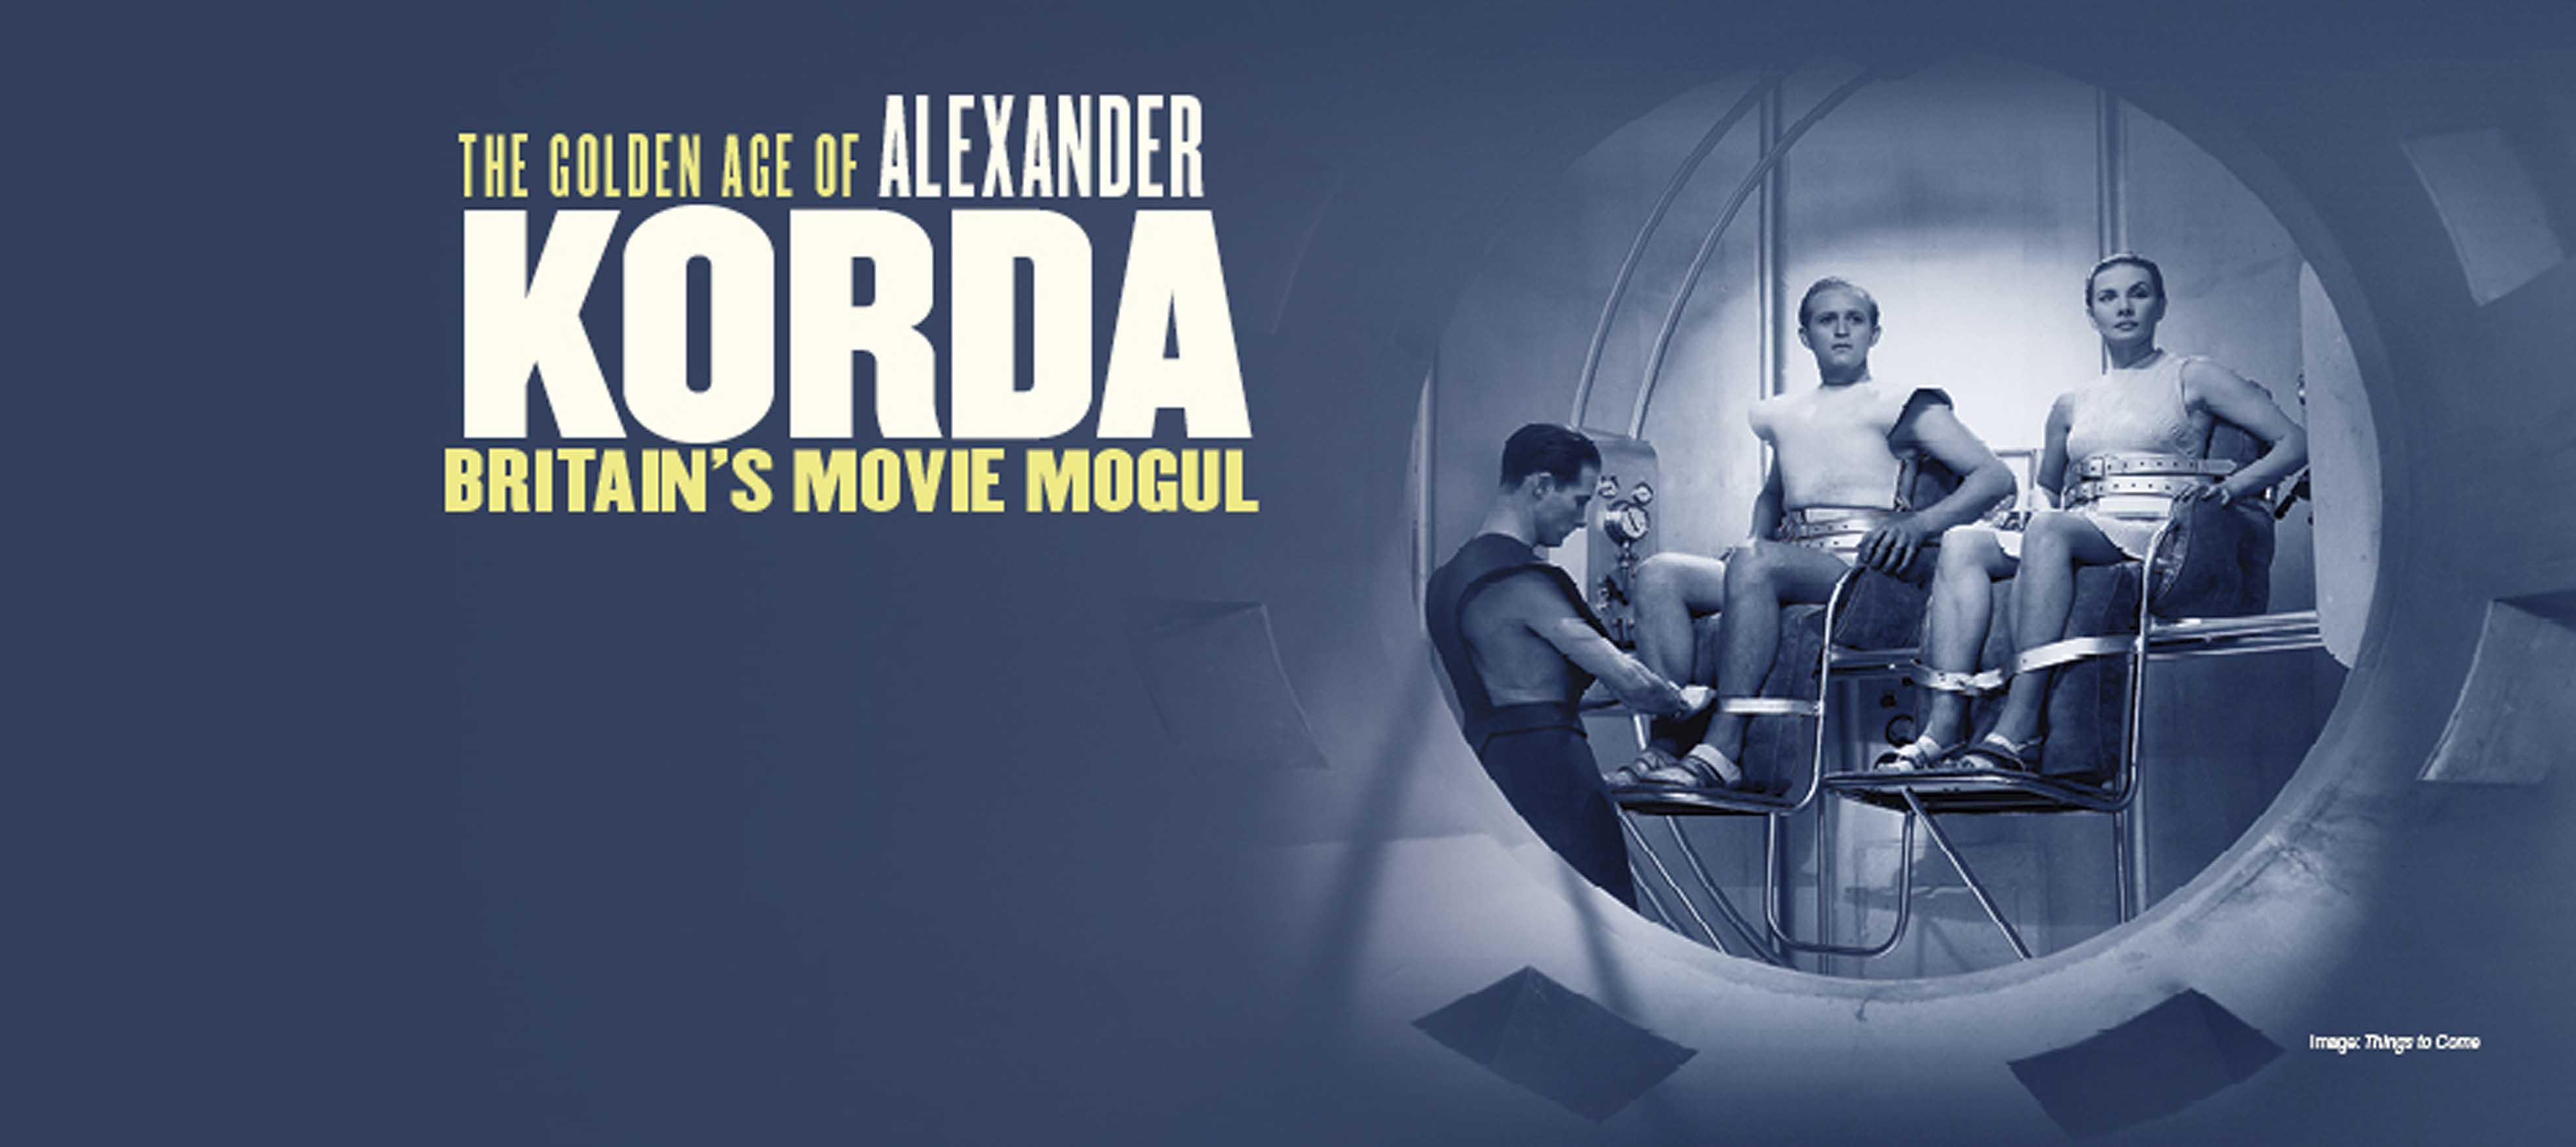 The Golden Age of Alexander Korda: Britain's Movie Mogul